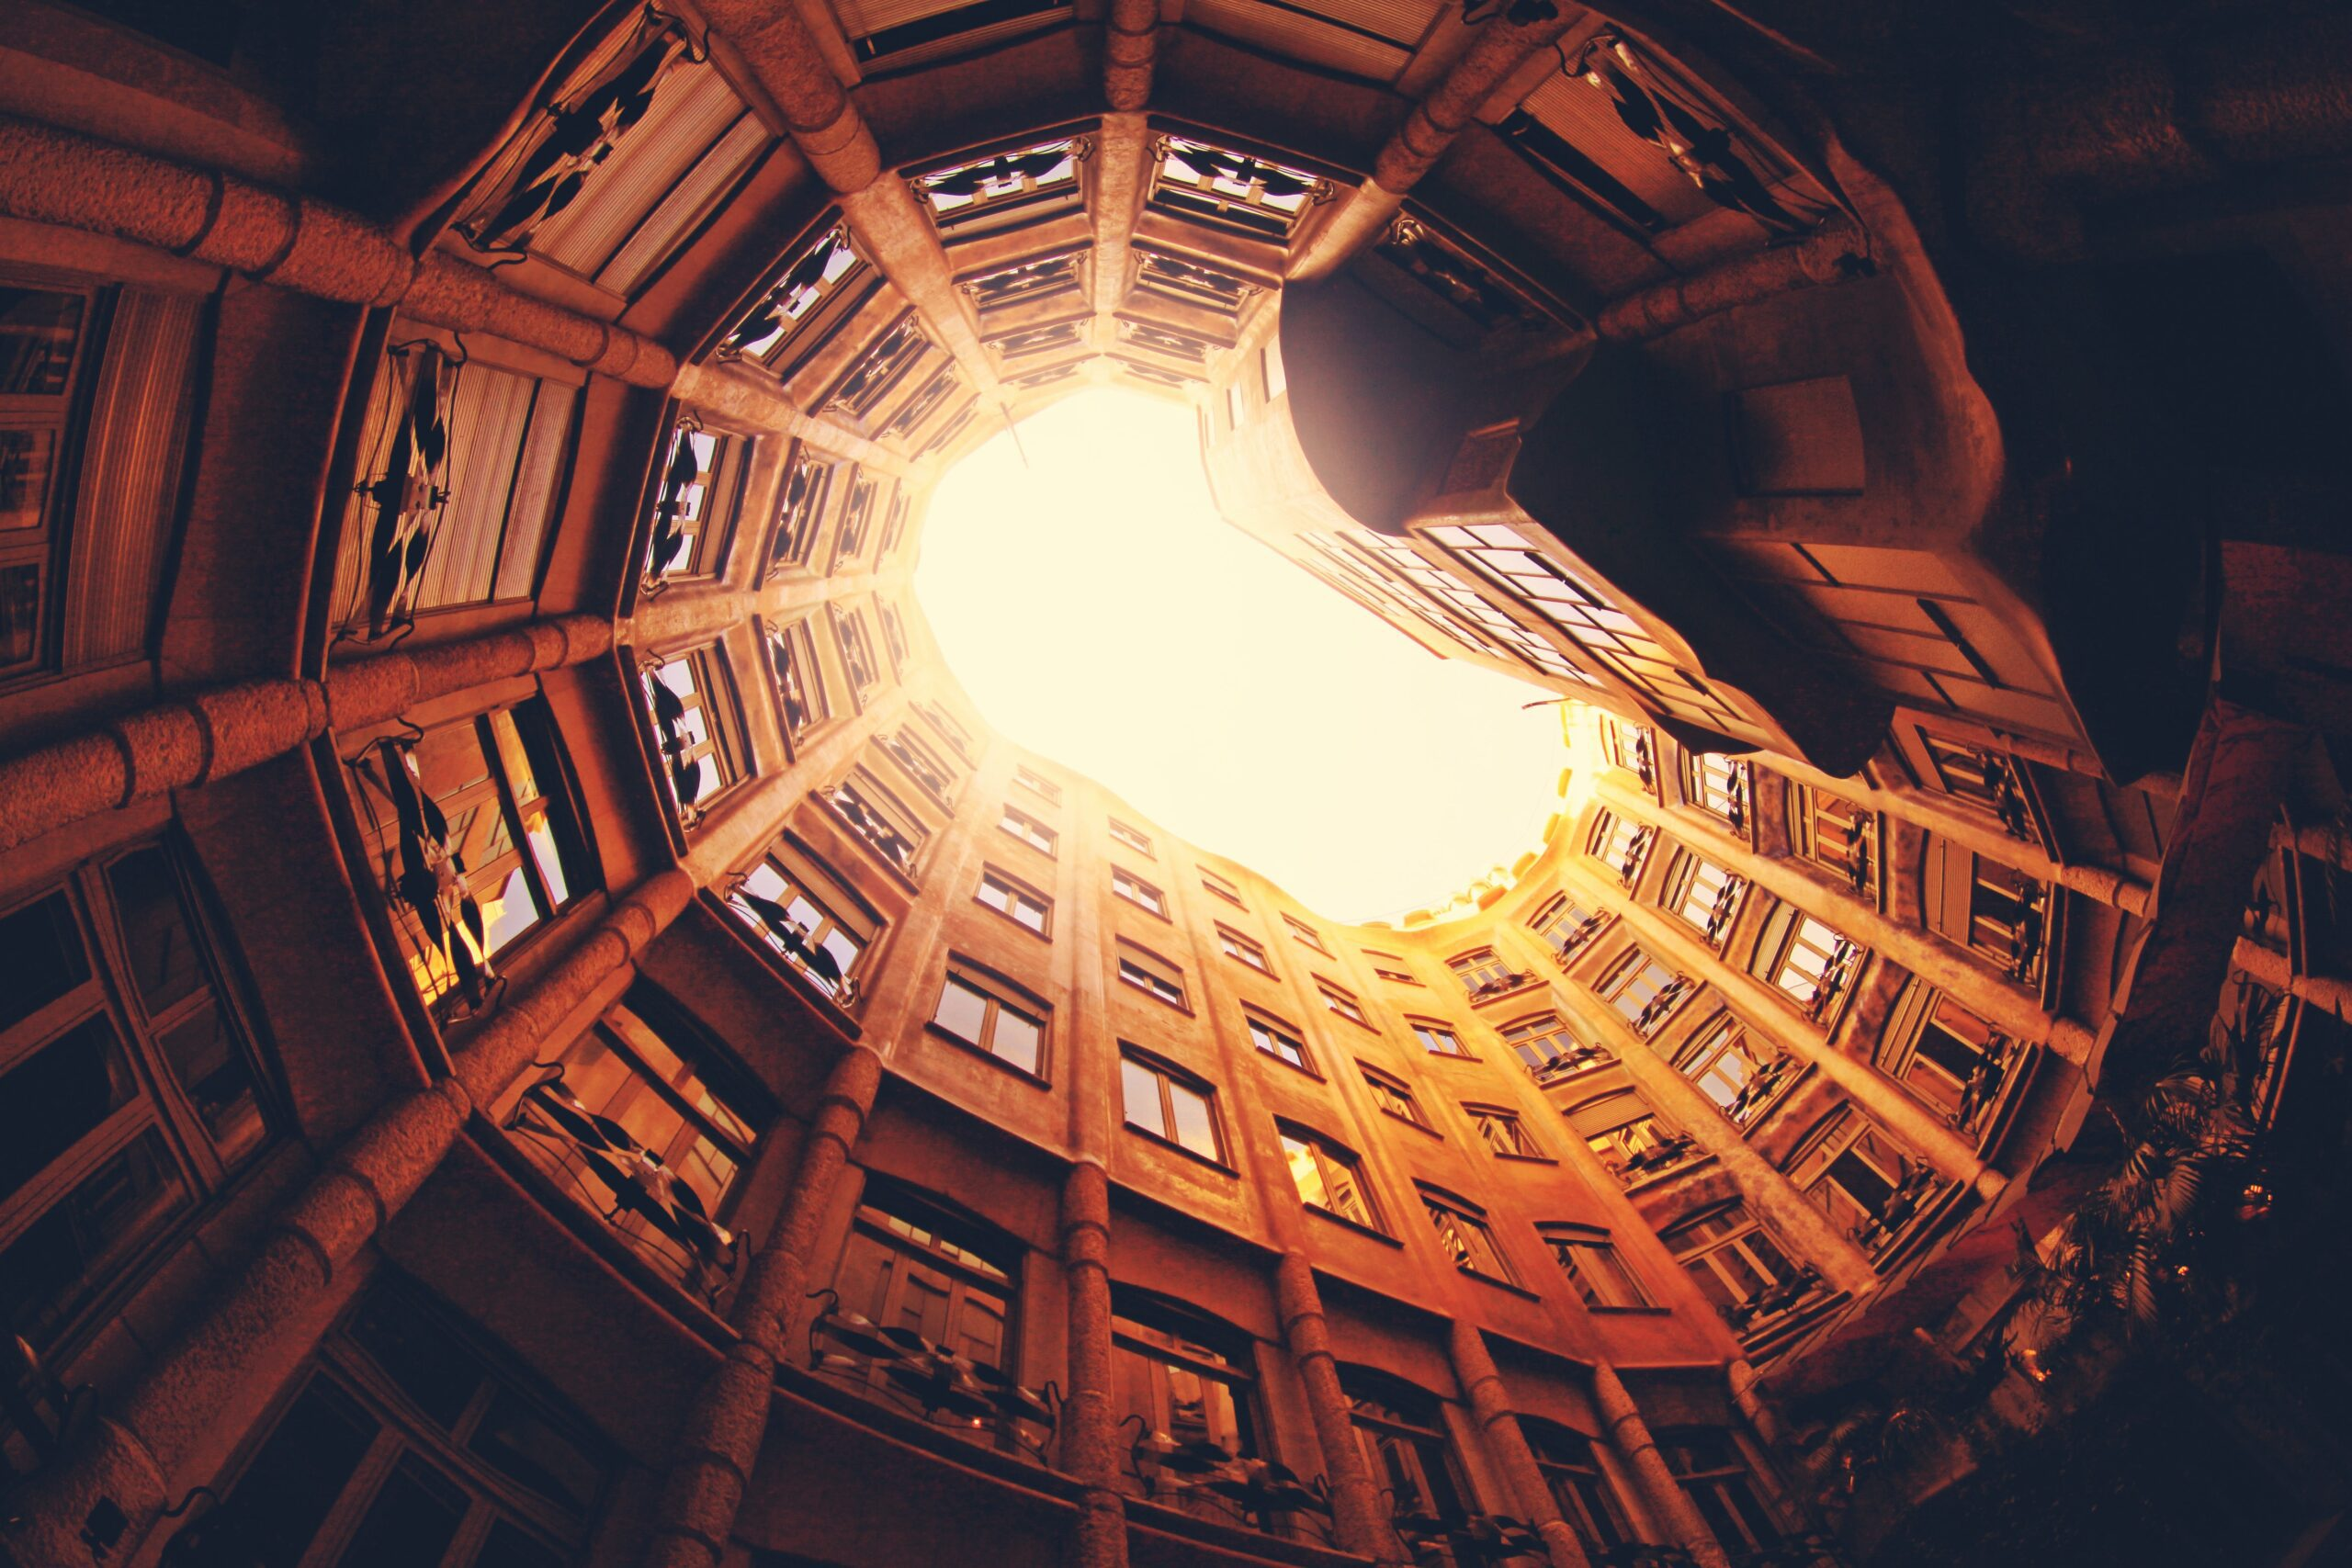 alexandre-perotto-Barcelona City image looking up to sky-sunlight-unsplash